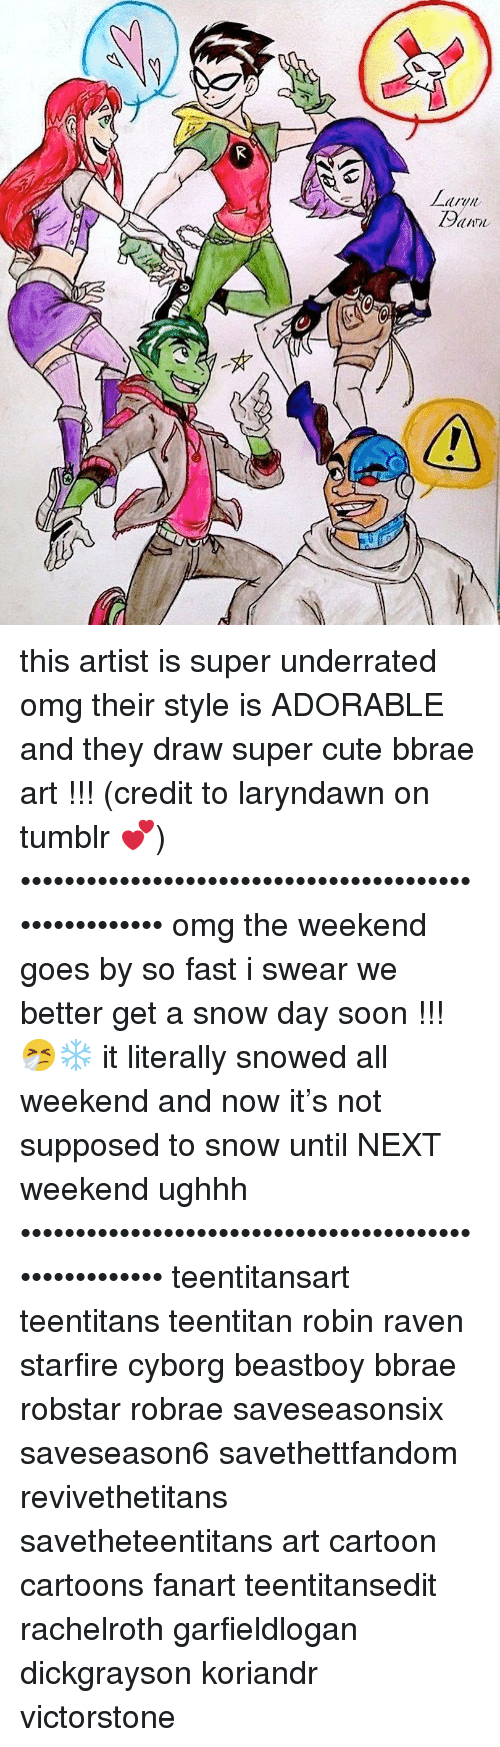 Cute, Memes, and Omg: this artist is super underrated omg their style is ADORABLE and they draw super cute bbrae art !!! (credit to laryndawn on tumblr 💕) •••••••••••••••••••••••••••••••••••••••••••••••••••••• omg the weekend goes by so fast i swear we better get a snow day soon !!! 🤧❄️ it literally snowed all weekend and now it's not supposed to snow until NEXT weekend ughhh •••••••••••••••••••••••••••••••••••••••••••••••••••••• teentitansart teentitans teentitan robin raven starfire cyborg beastboy bbrae robstar robrae saveseasonsix saveseason6 savethettfandom revivethetitans savetheteentitans art cartoon cartoons fanart teentitansedit rachelroth garfieldlogan dickgrayson koriandr victorstone